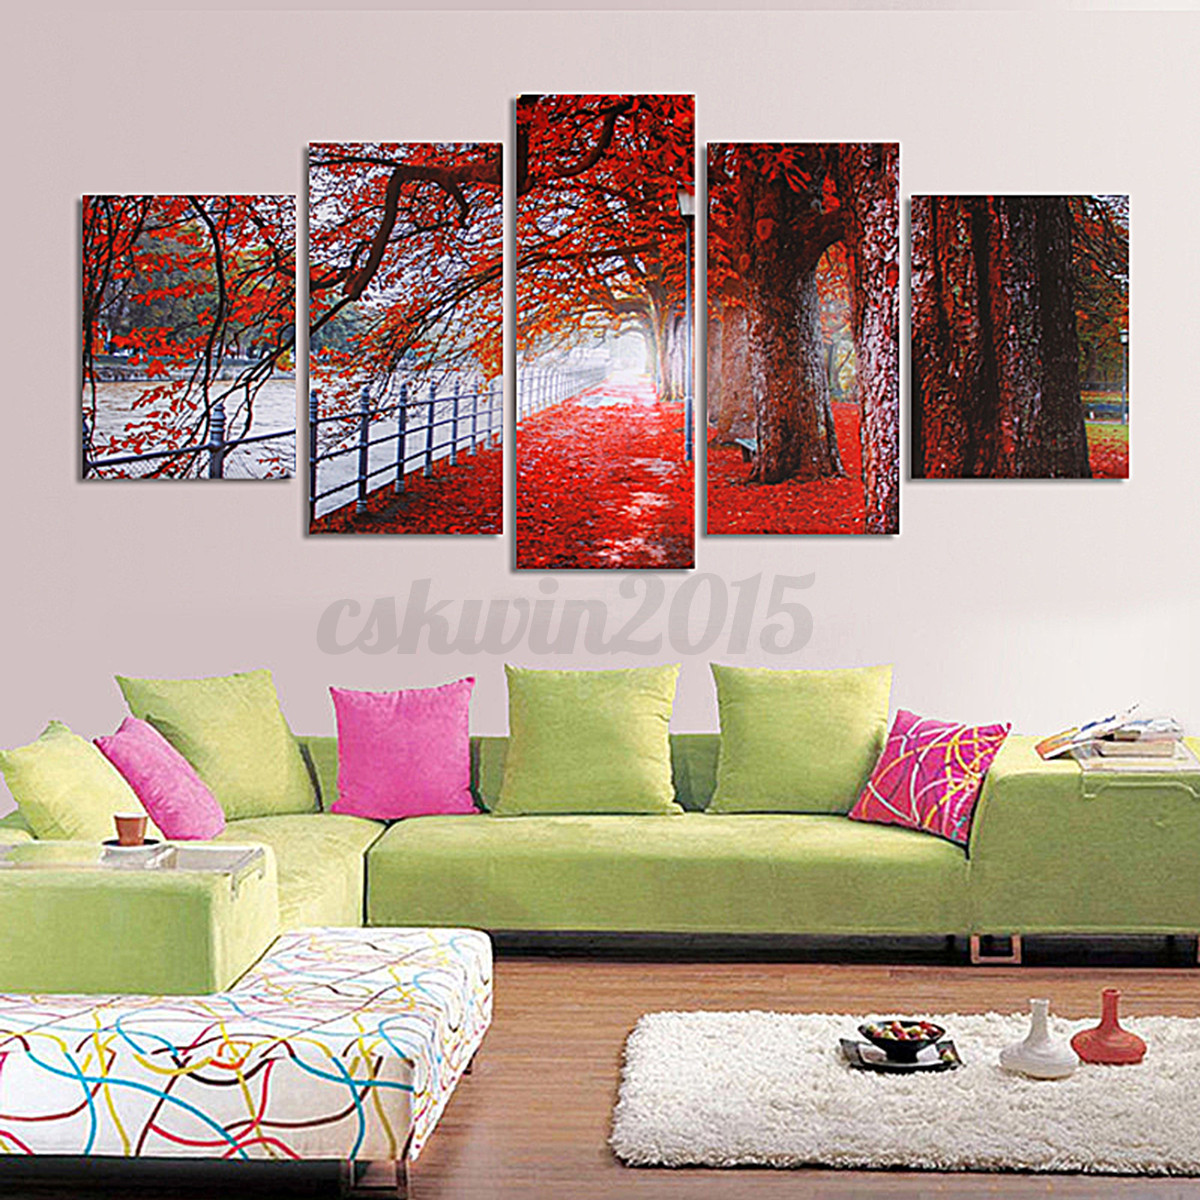 curtains in living room pictures hd mangrove picture modern canvas print painting home wall 21337